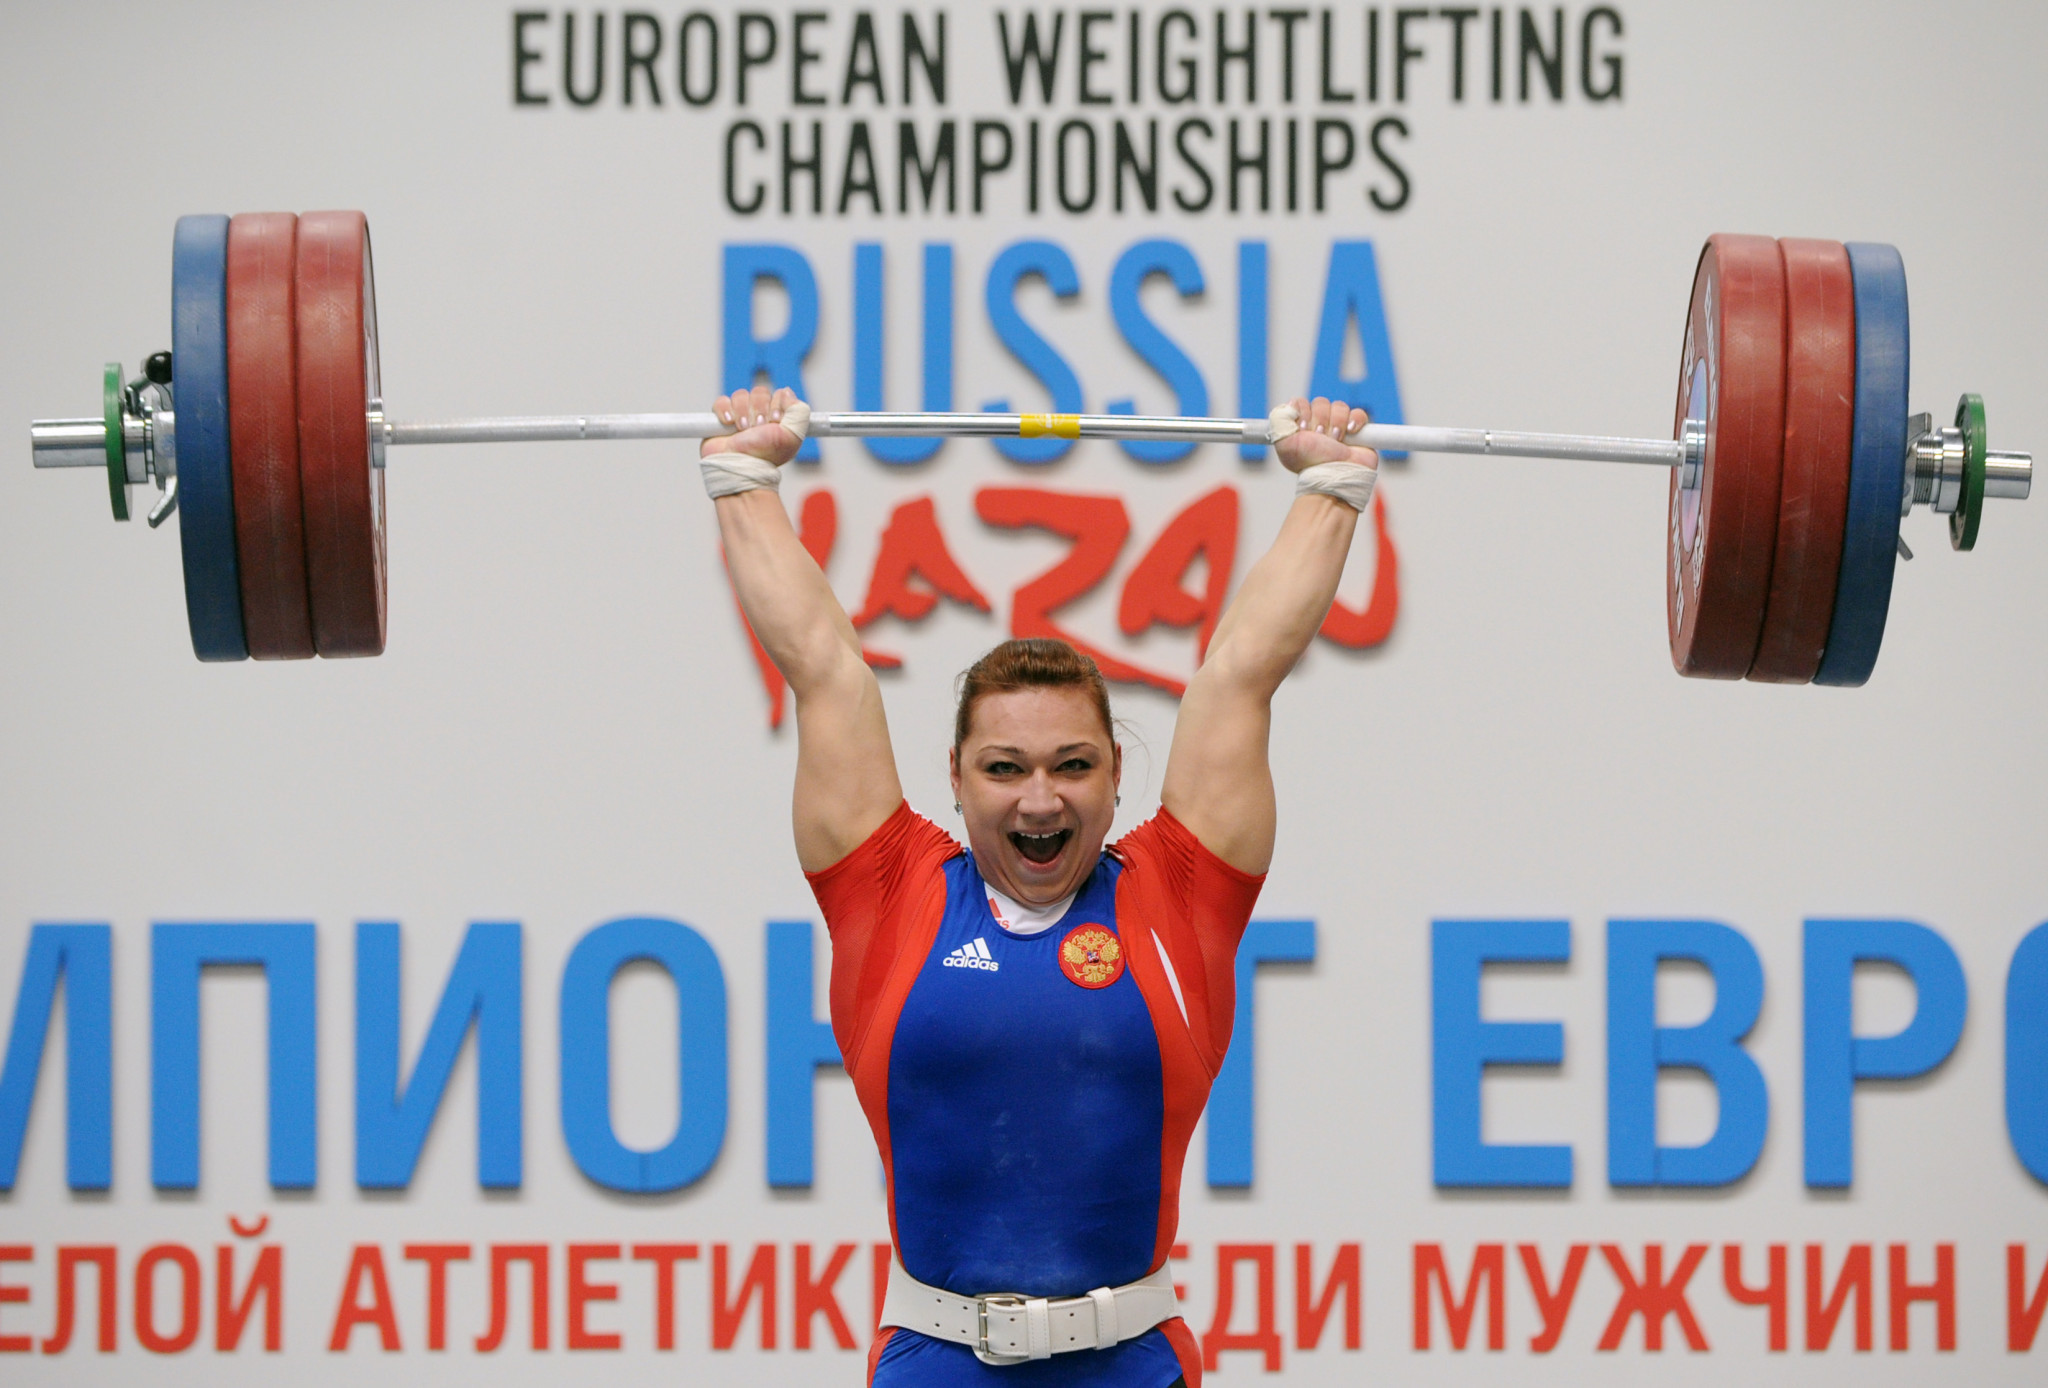 Russian weightlifter Nadezhda Evstiukhina is one of three athletes announced today as having tested positive at the Russian National Championships in 2015 ©Getty Images